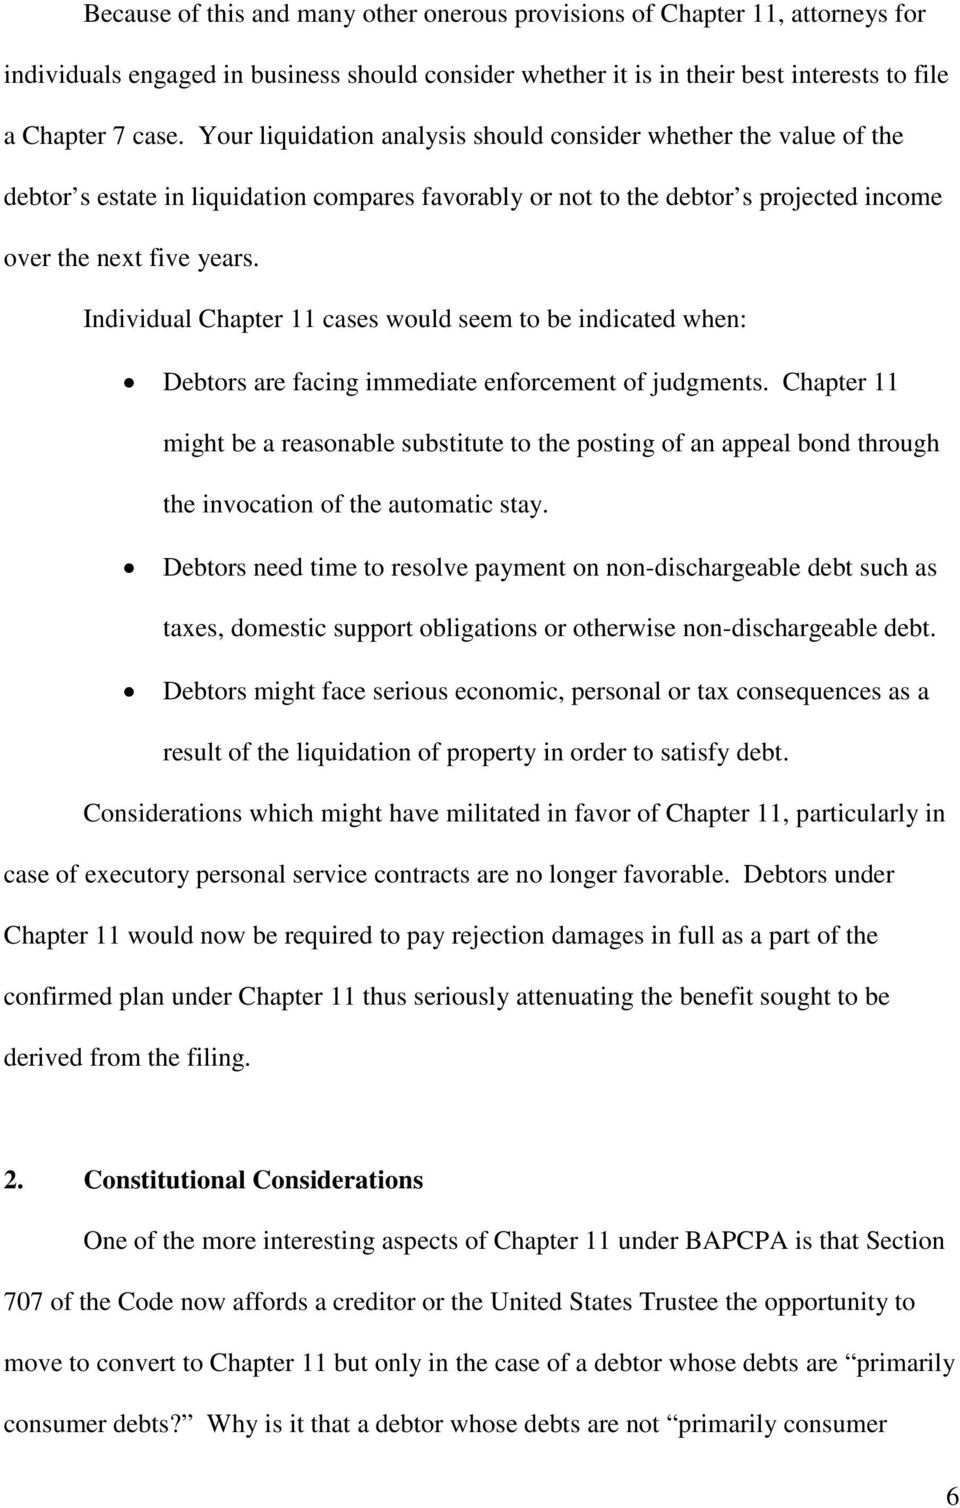 Individual Chapter 11 cases would seem to be indicated when: Debtors are facing immediate enforcement of judgments.